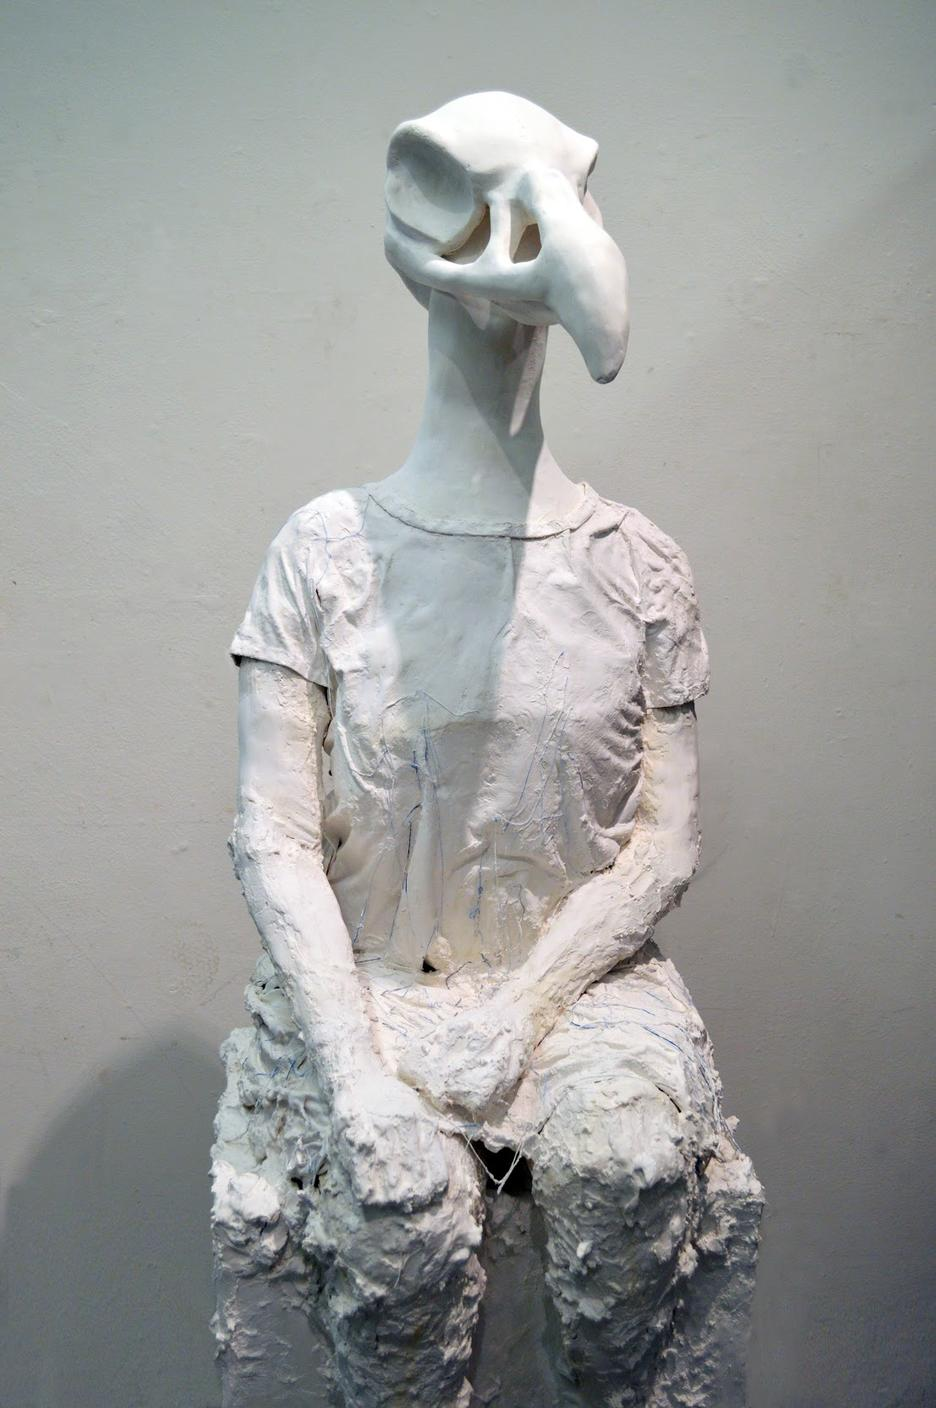 Student work by Emily Whynott BFA 2020. Sculpture of a human figure with the head of a bird.